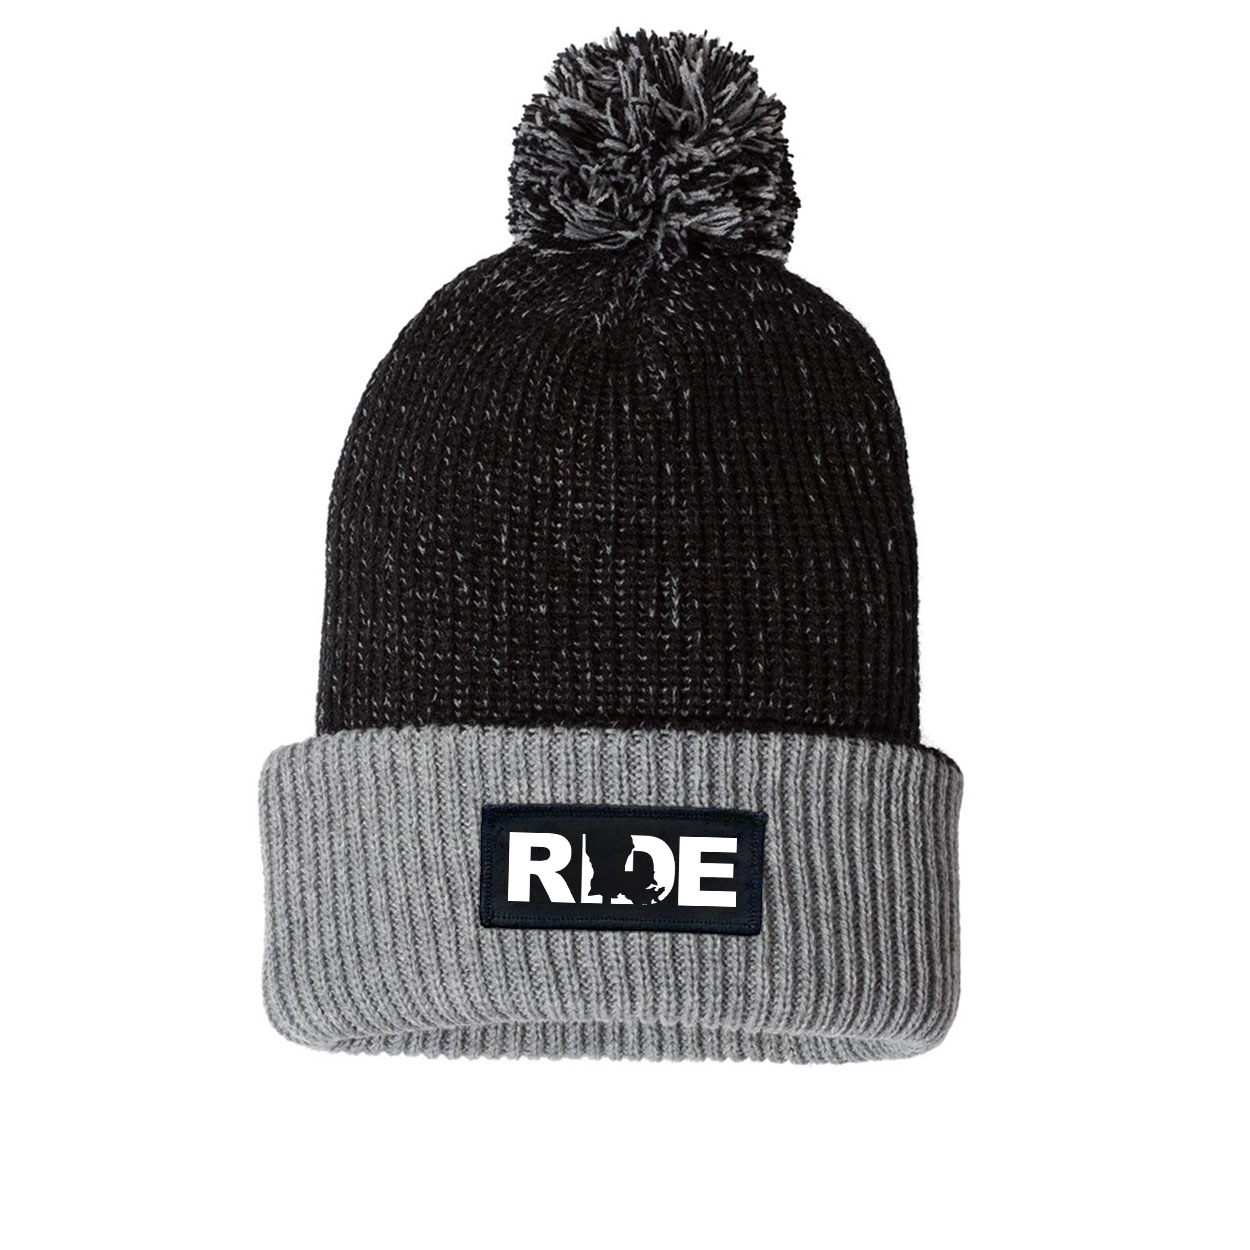 Ride Louisiana Night Out Woven Patch Roll Up Pom Knit Beanie Black/Gray (White Logo)